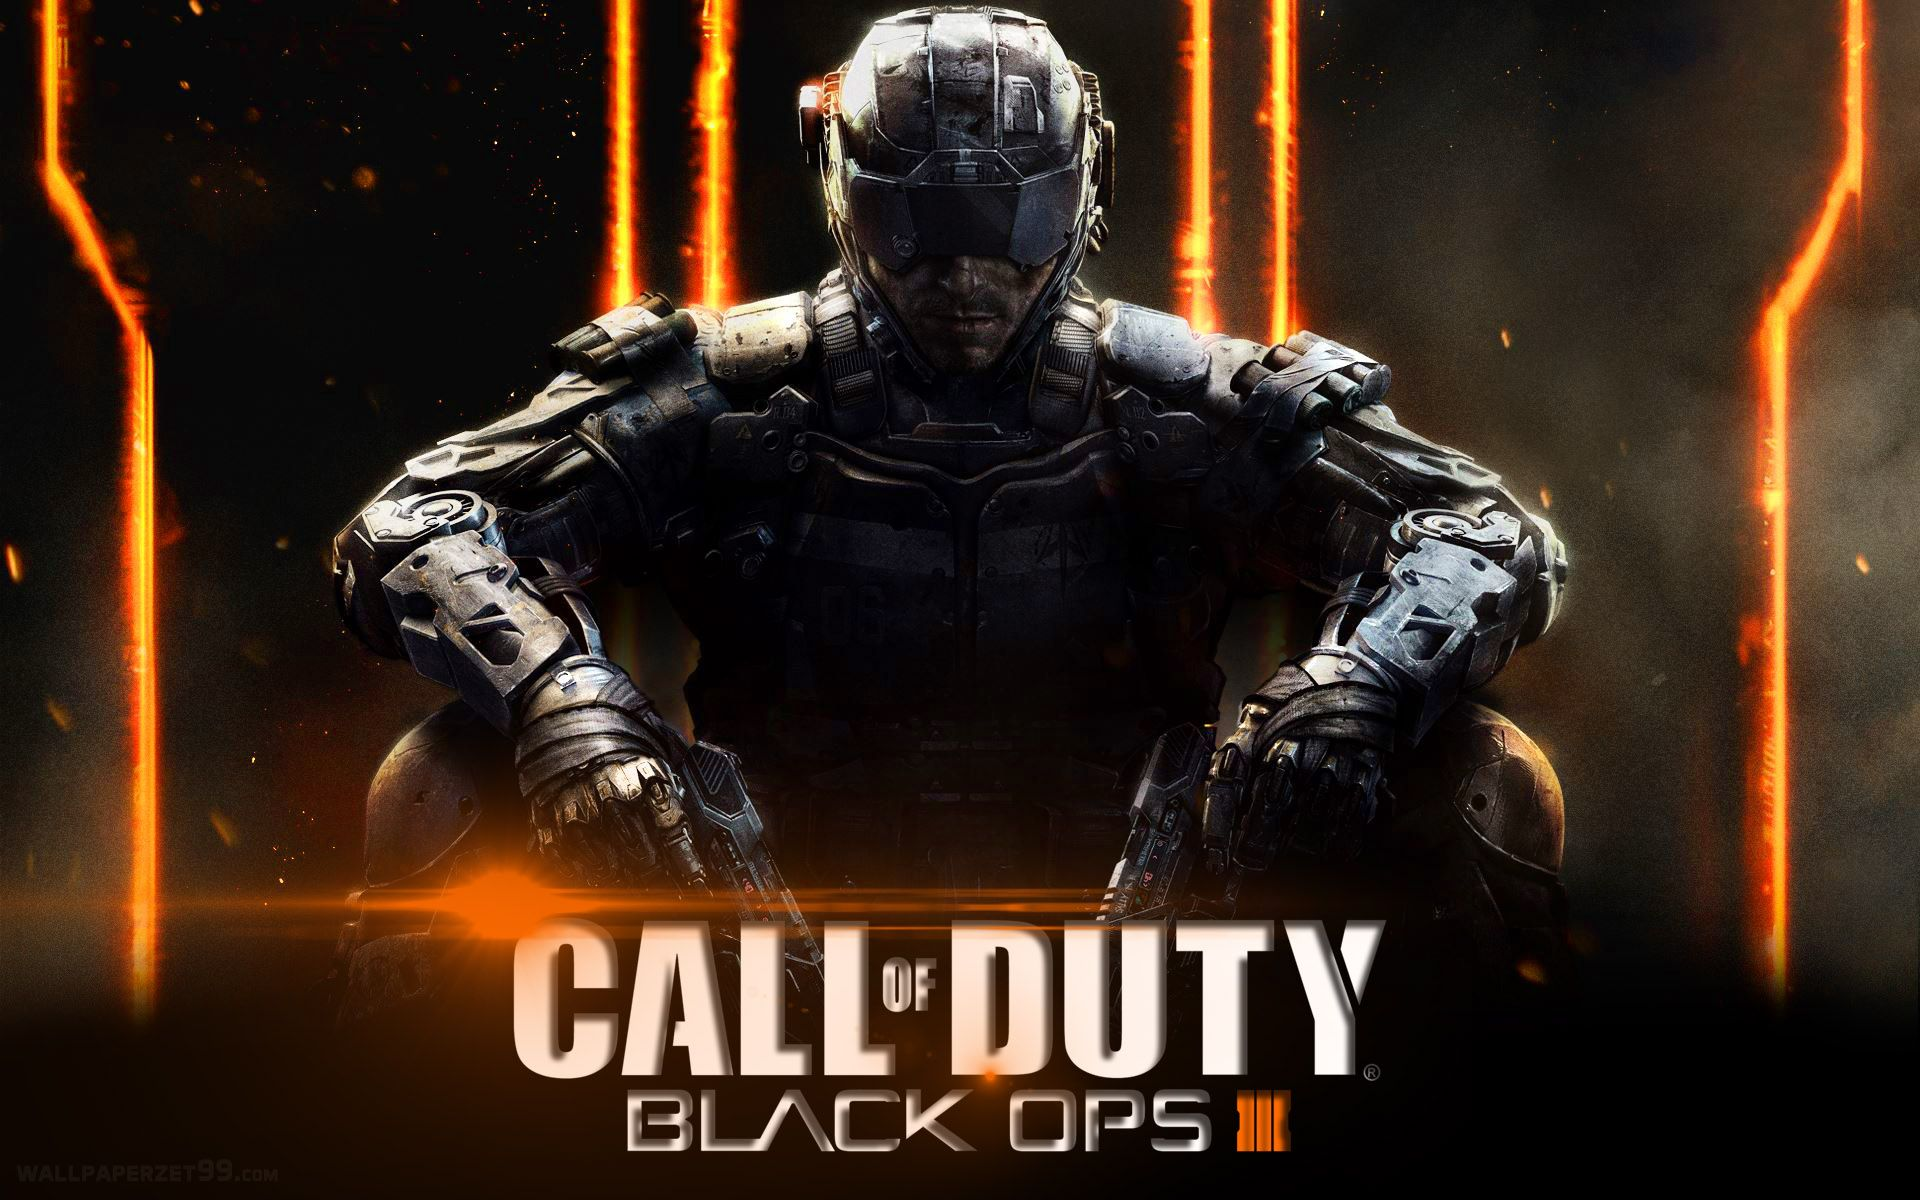 Call Of Duty Black Ops 3 Games Wallpapers Hd Wallpaper Rate Call Of Duty Black Ops 3 Call Of Duty Black Ops Iii Call Of Duty Black